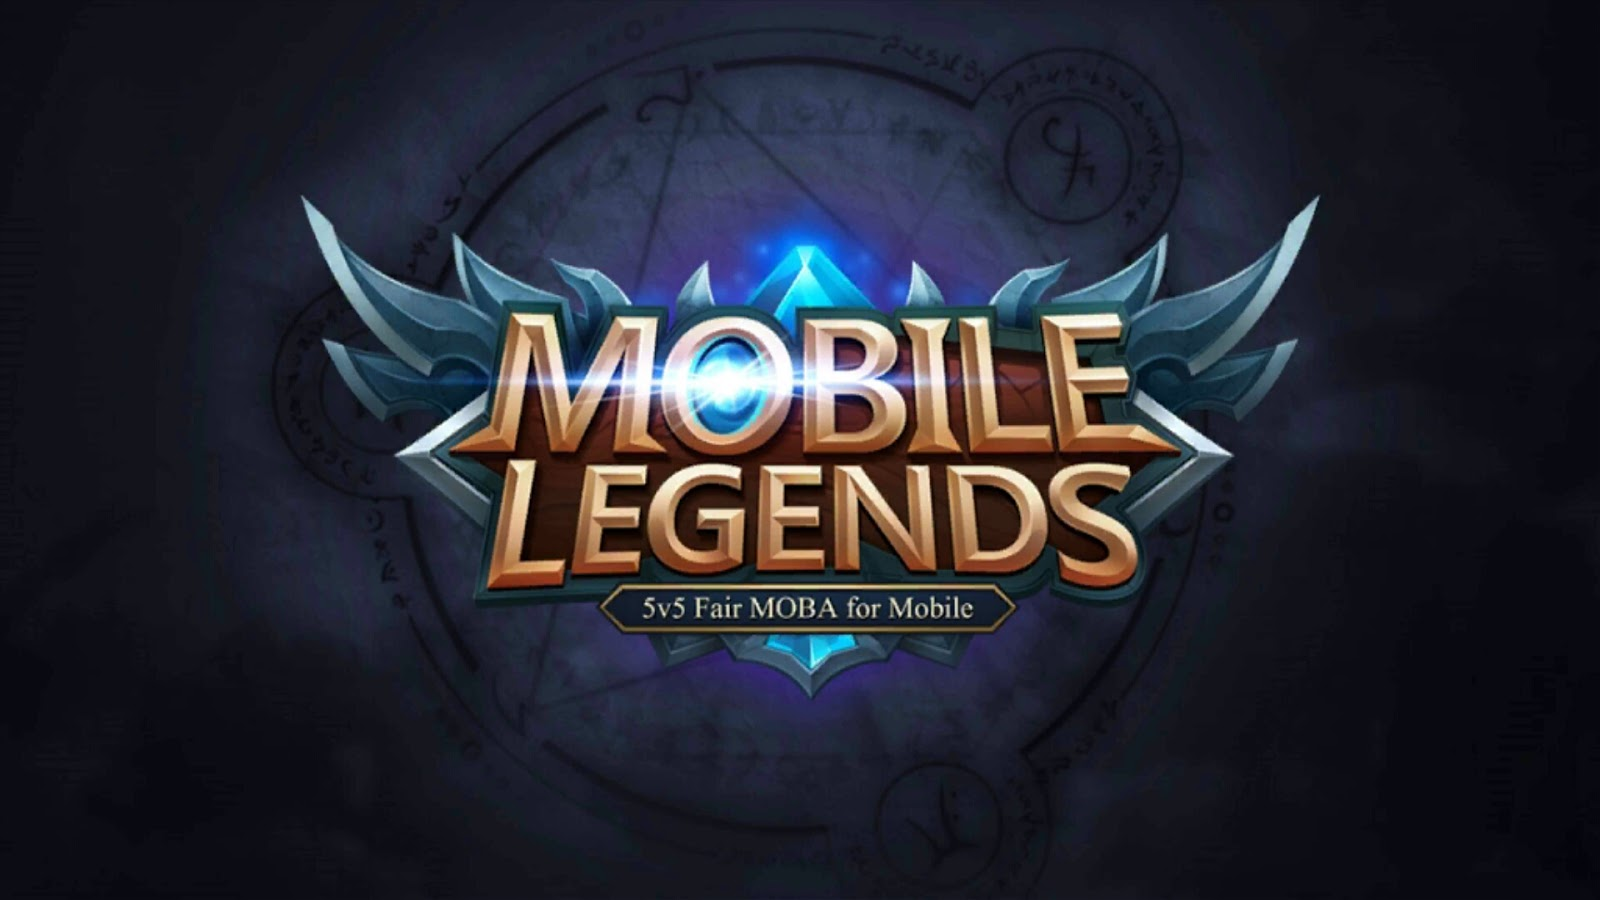 Review Game Mobile Legend, Moba Android 5vs5 - Xthegamers